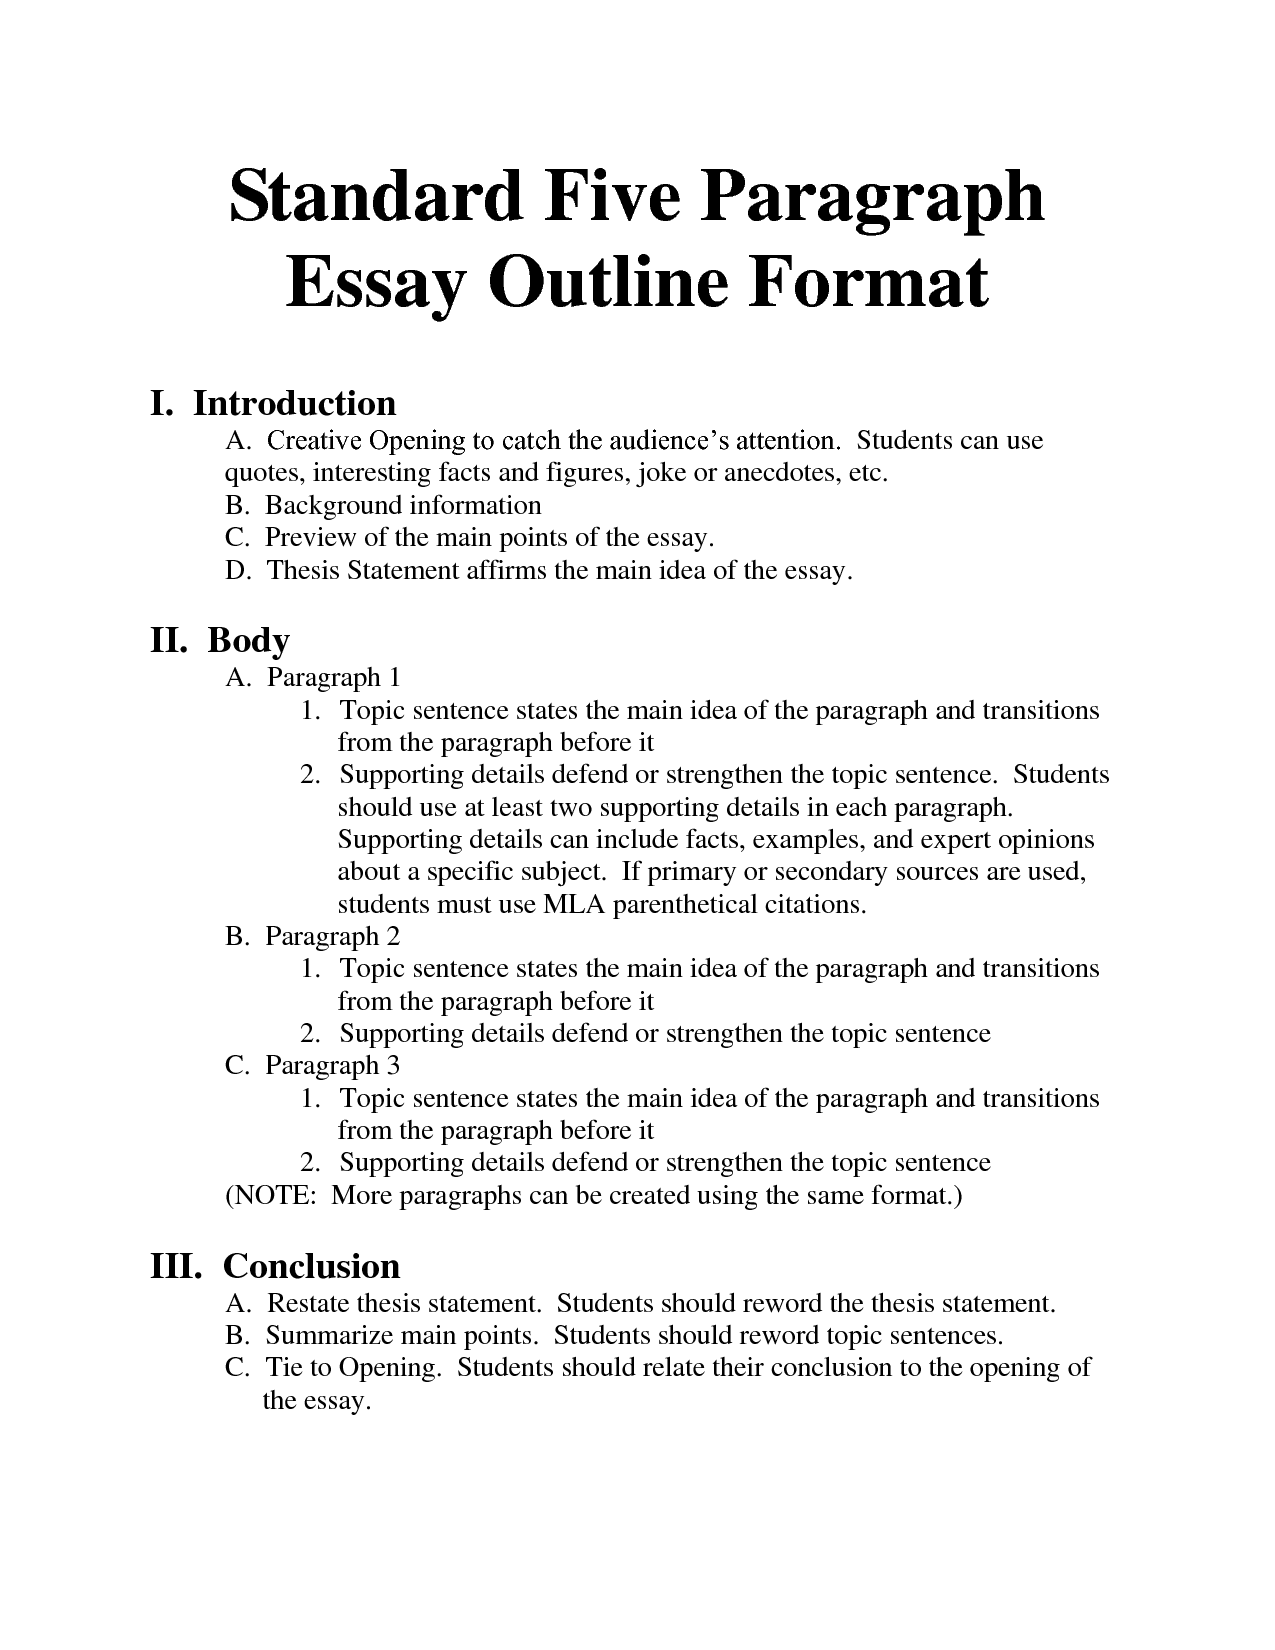 Essay Examples English Standard Essay Format Bing Images Essays Homeschool Standard Essay Format  Bing Images Proposal Essay Ideas also Examples Of Essay Papers Simple Essays In English Standard Essay Format Bing Images Essays  How To Write A Thesis Statement For A Essay